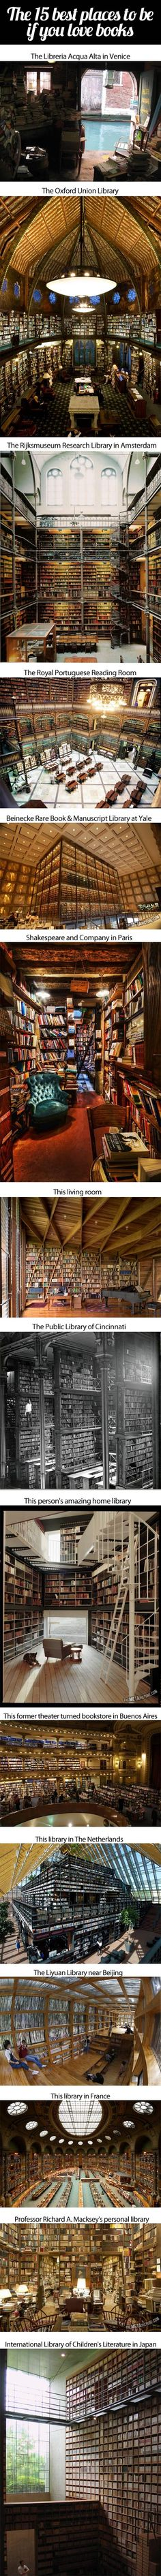 This just increased my daily happiness. Except for the last one. Who would design a Children's library that way?